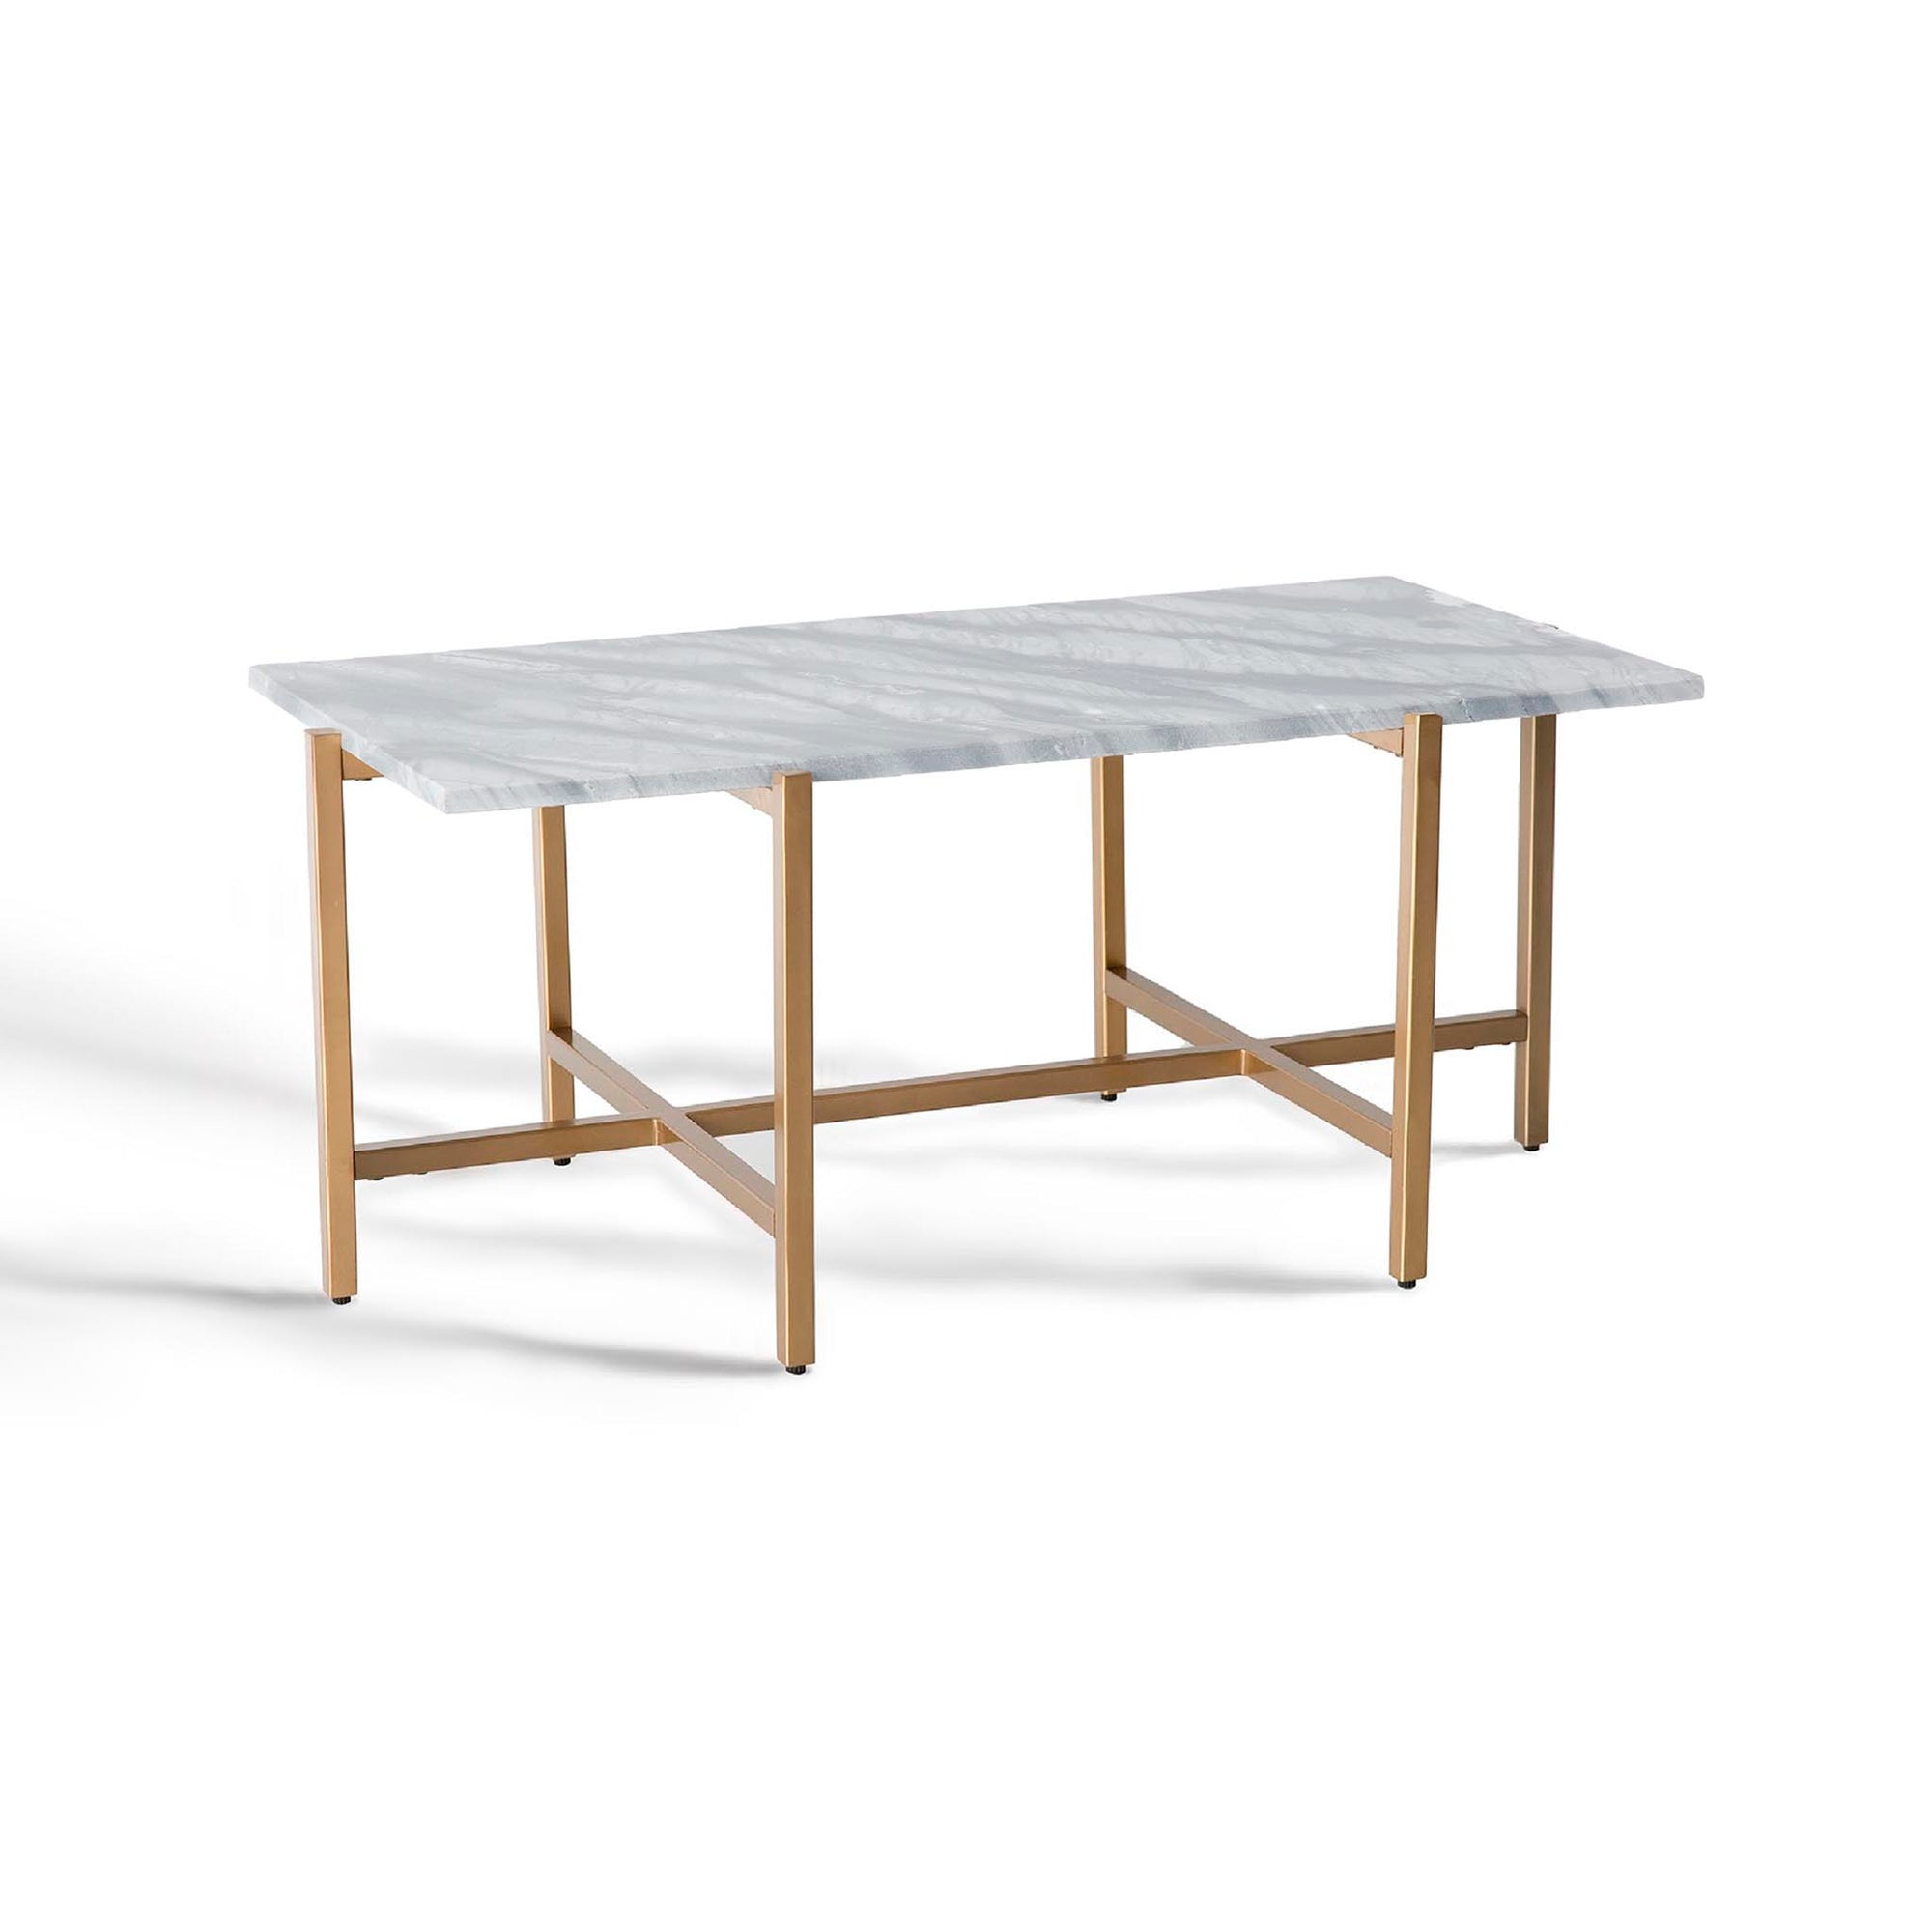 Kandla Rectangular Grey Marble Topped Coffee Table with Gold Base by Roseland Furniture